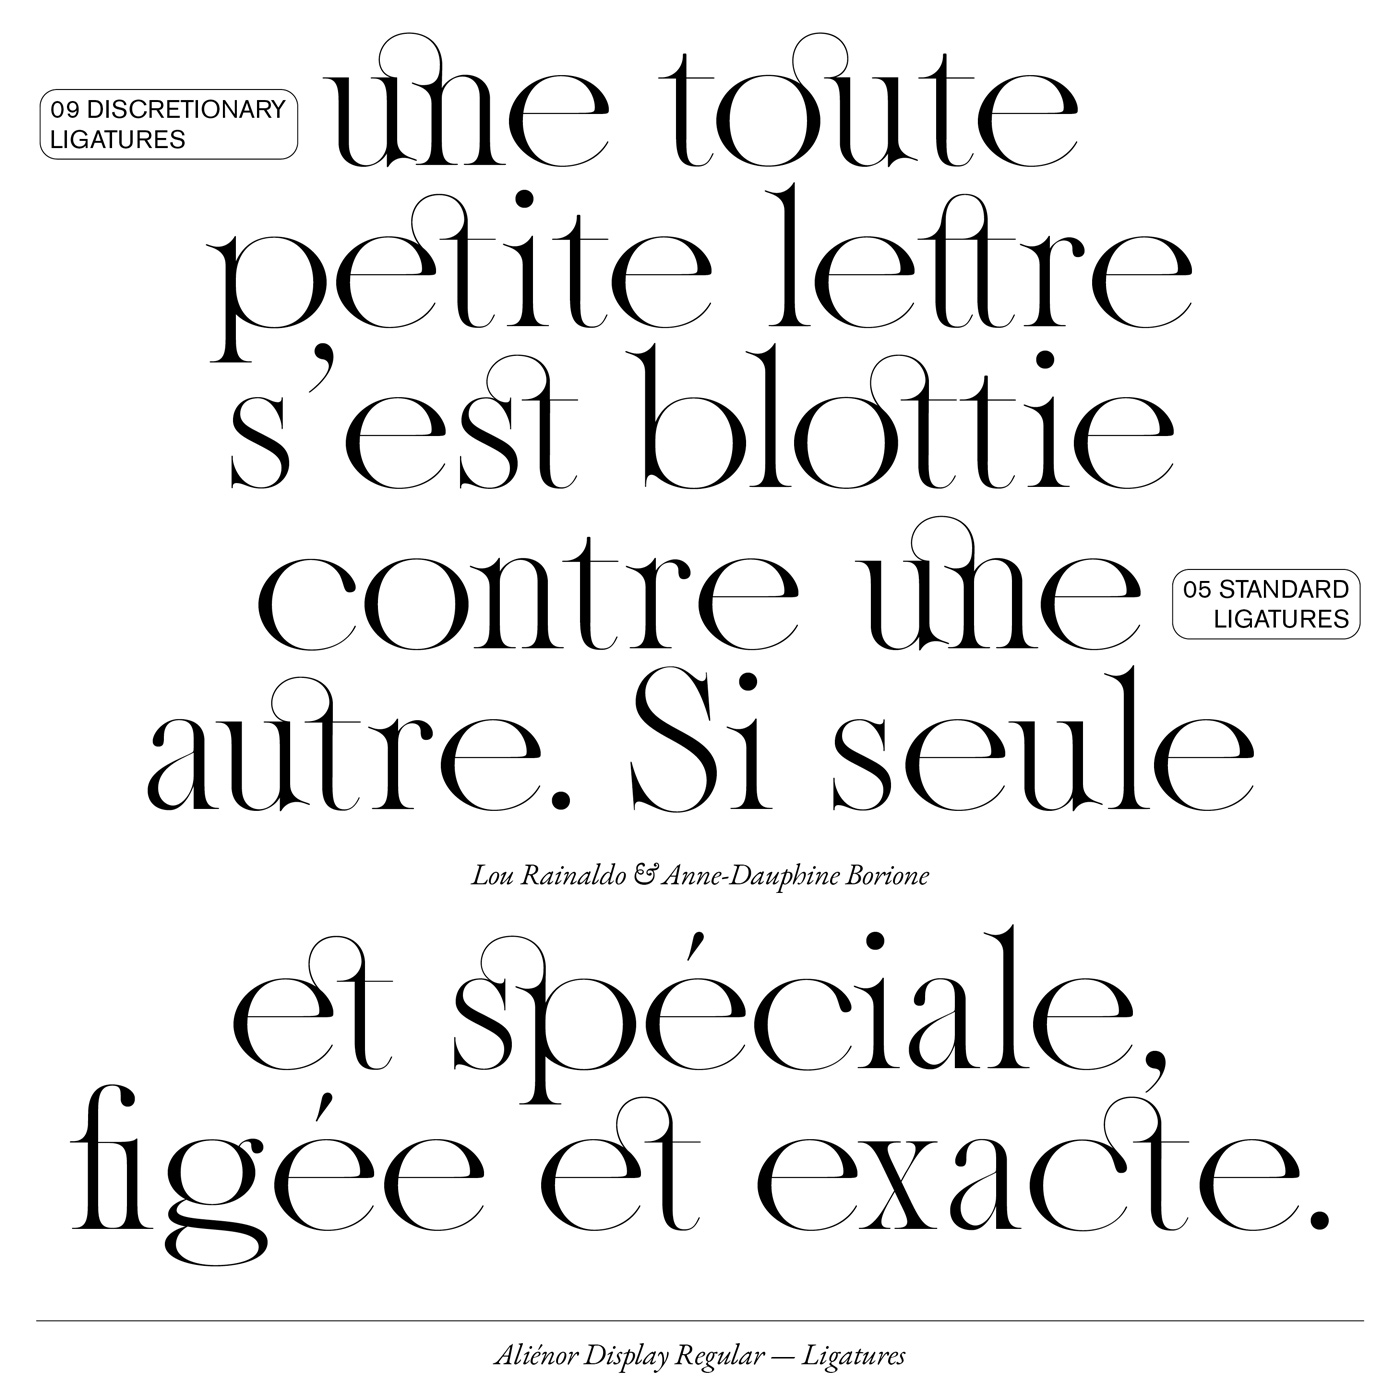 08 collide24 Lou Rainaldo Anne Dauphine Borione - The typeface 'Aliénor' by Anne-Dauphine Borione and Lou Rainaldo is a mixture of elegance and extravagance